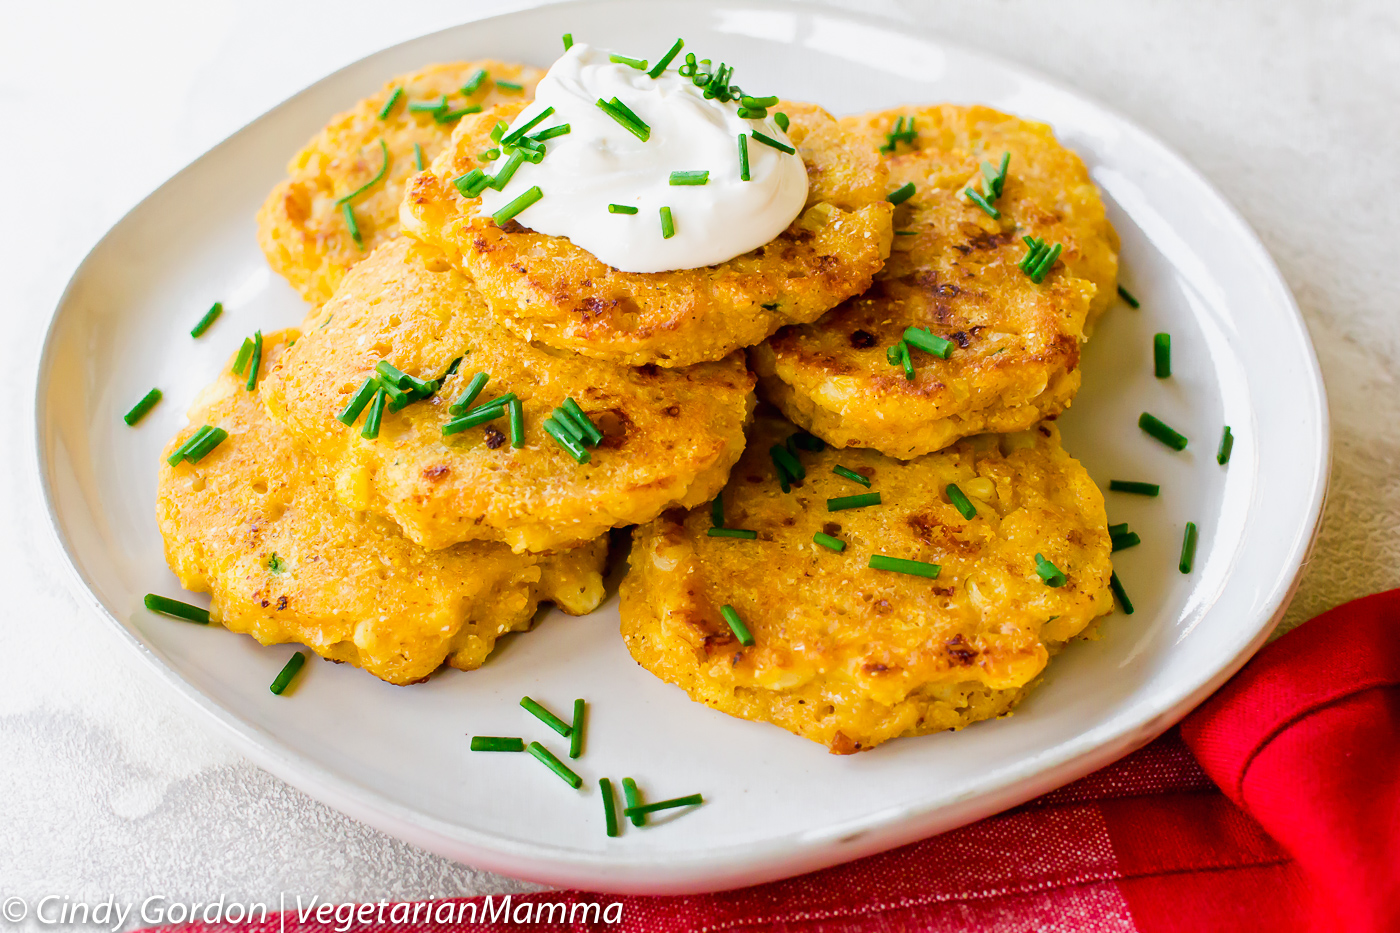 Zucchini corn Cakes or Zucchini Fritters are gluten free and make a perfect freezer meal.